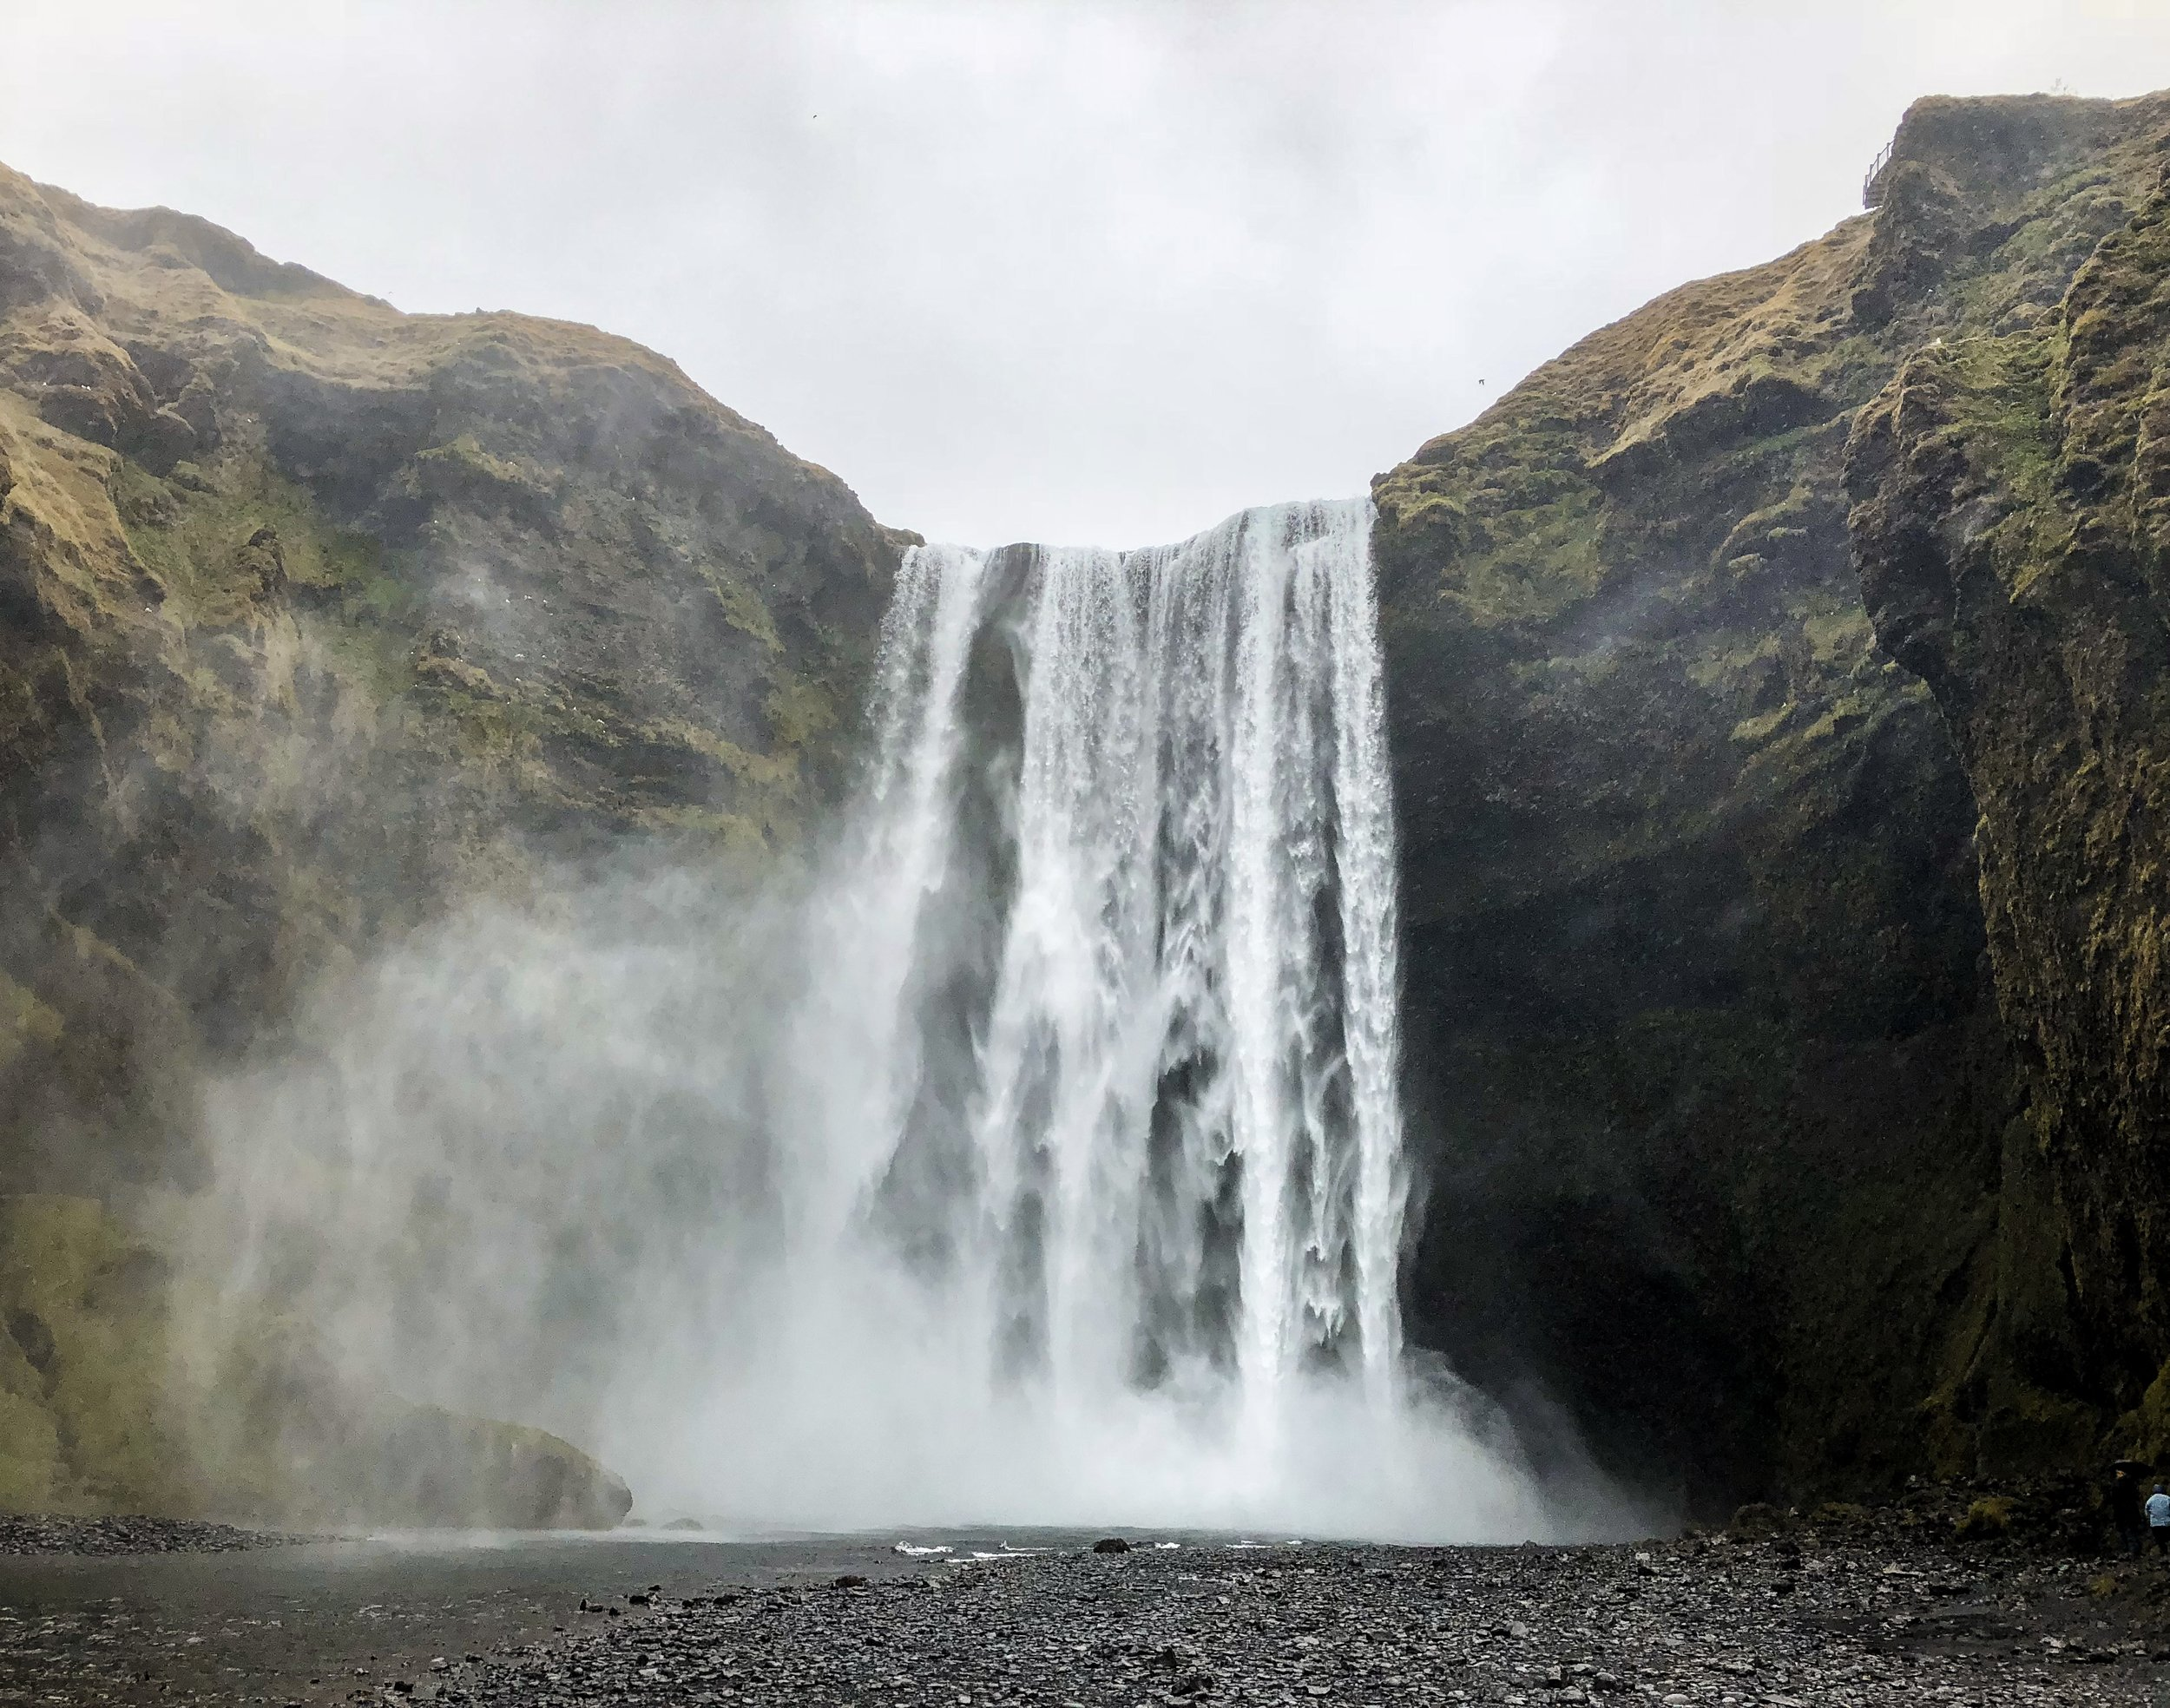 Skógafoss was magnificent!